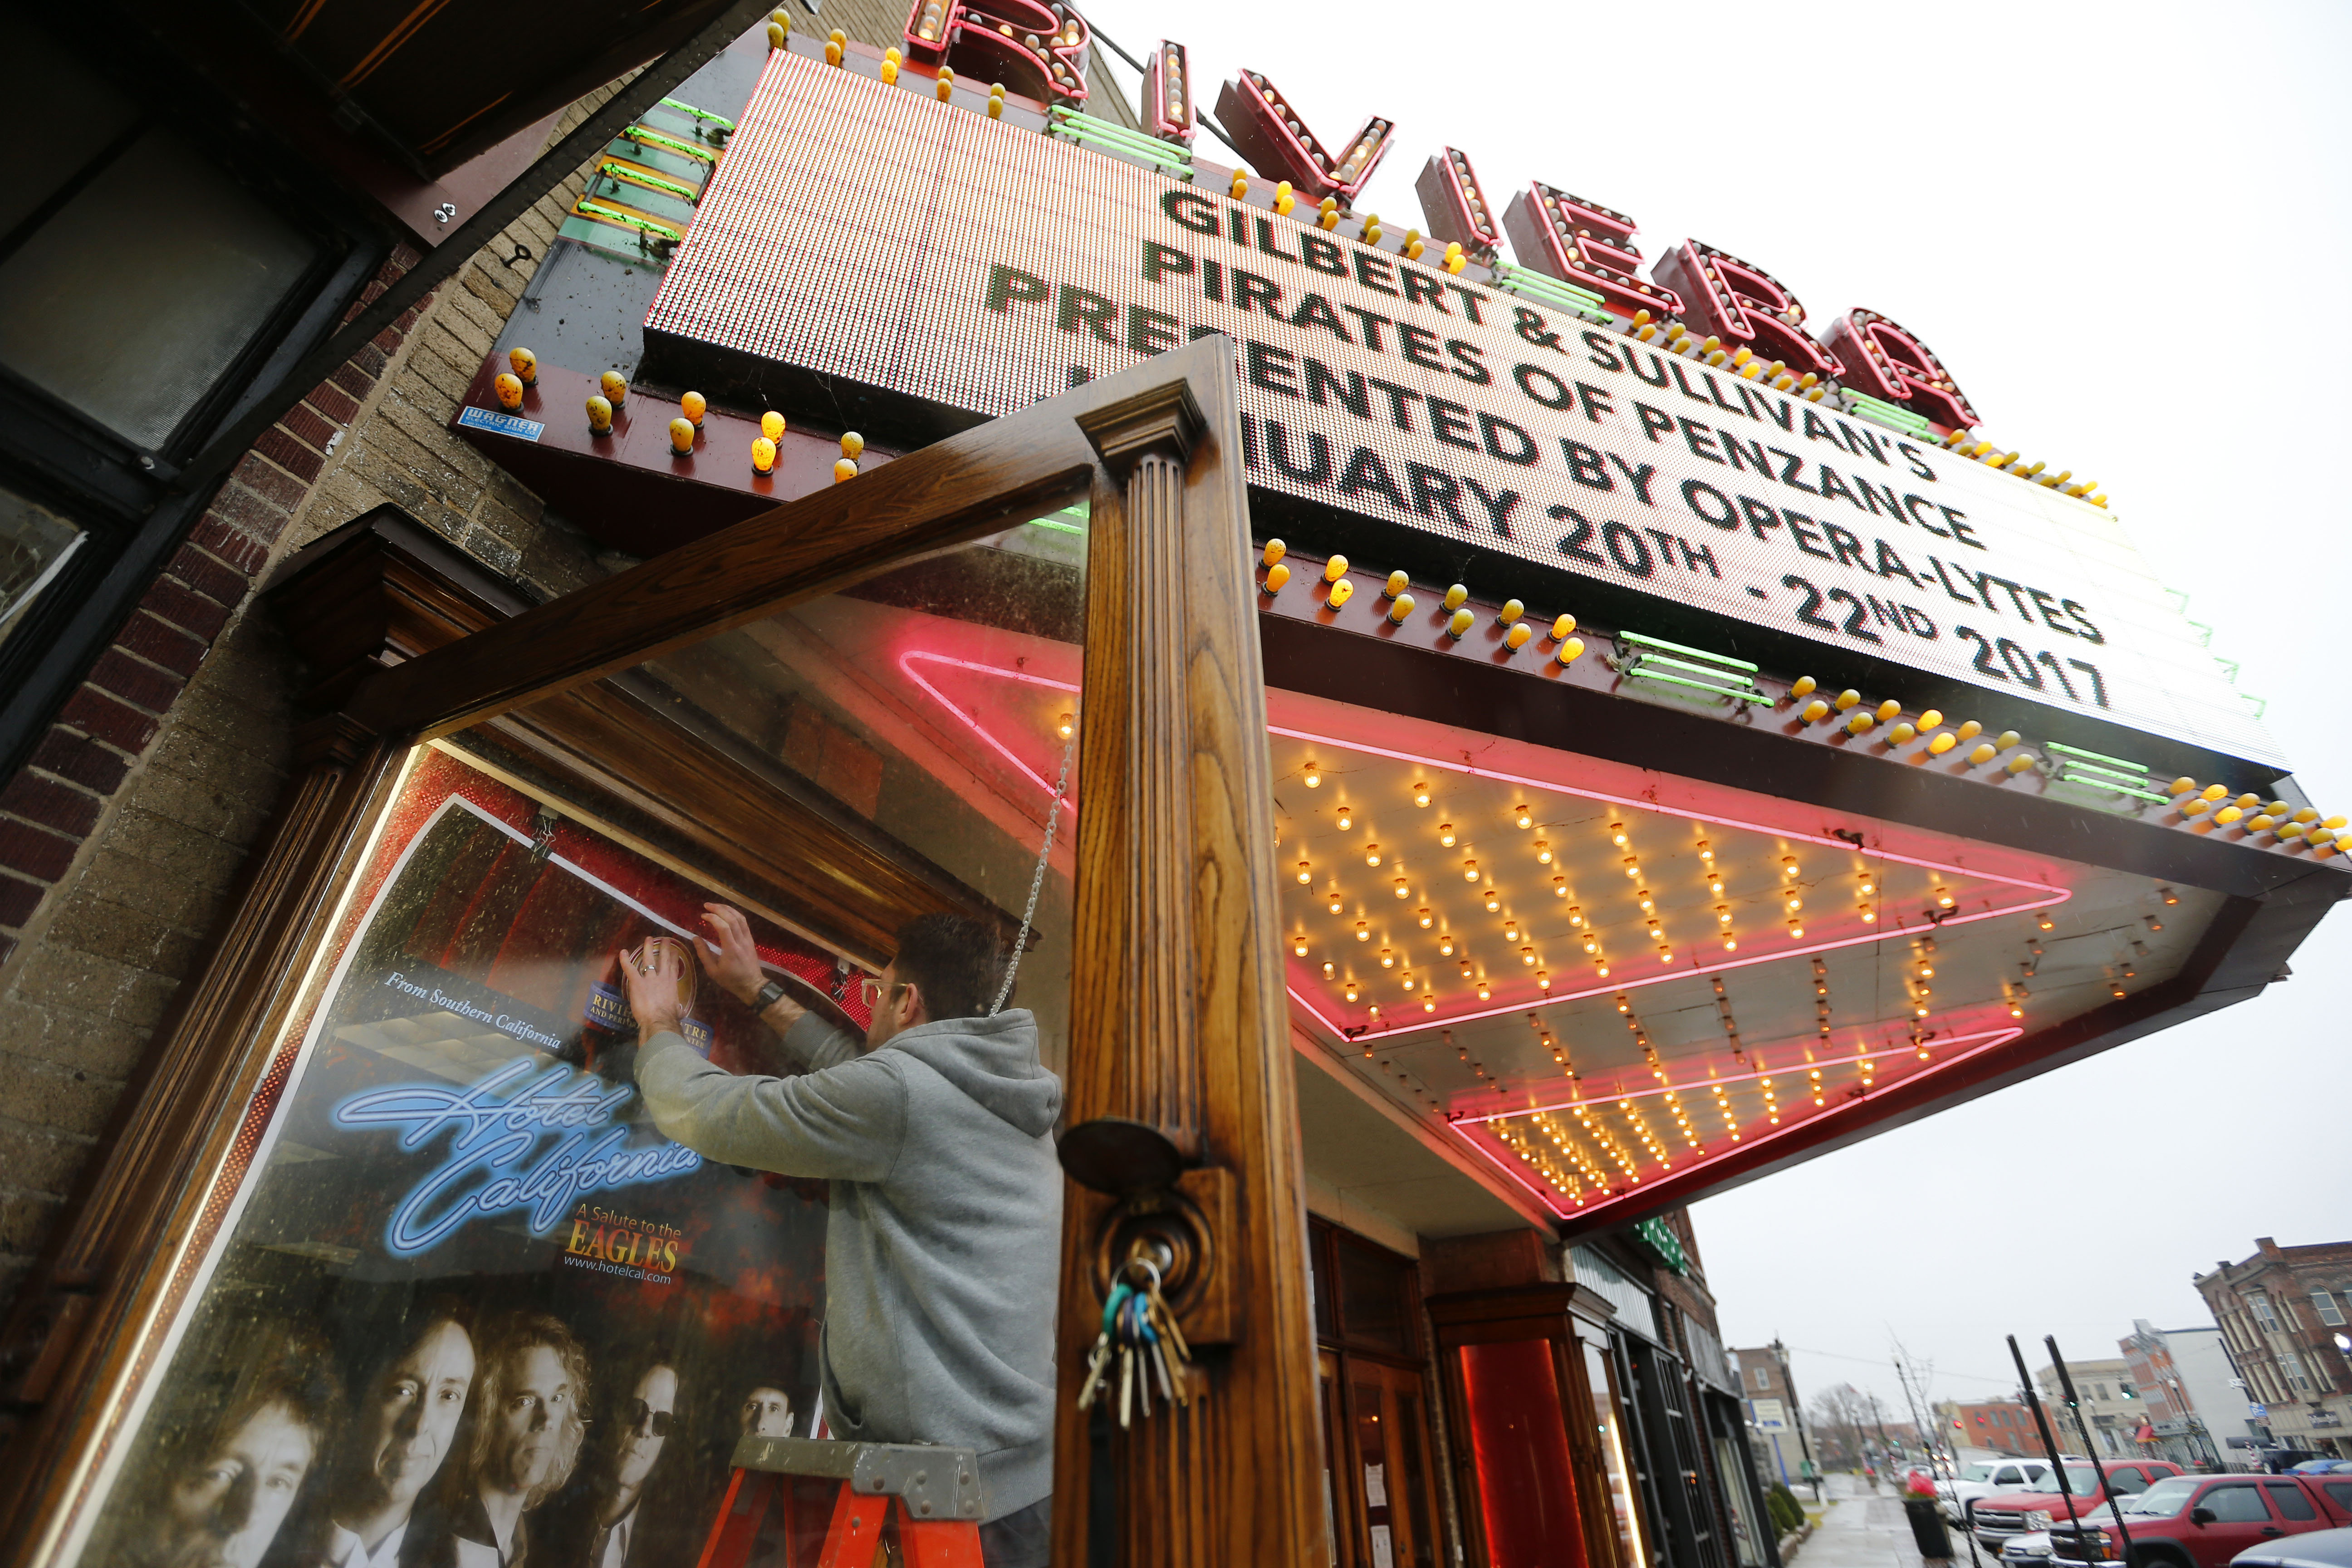 Derek Heckler pins up a sign in the case next to the marquee at the Riviera Theatre &  Performing Arts Center in North Tonawanda  on Tuesday, January 3, 2017.      (Mark Mulville/The Buffalo News)